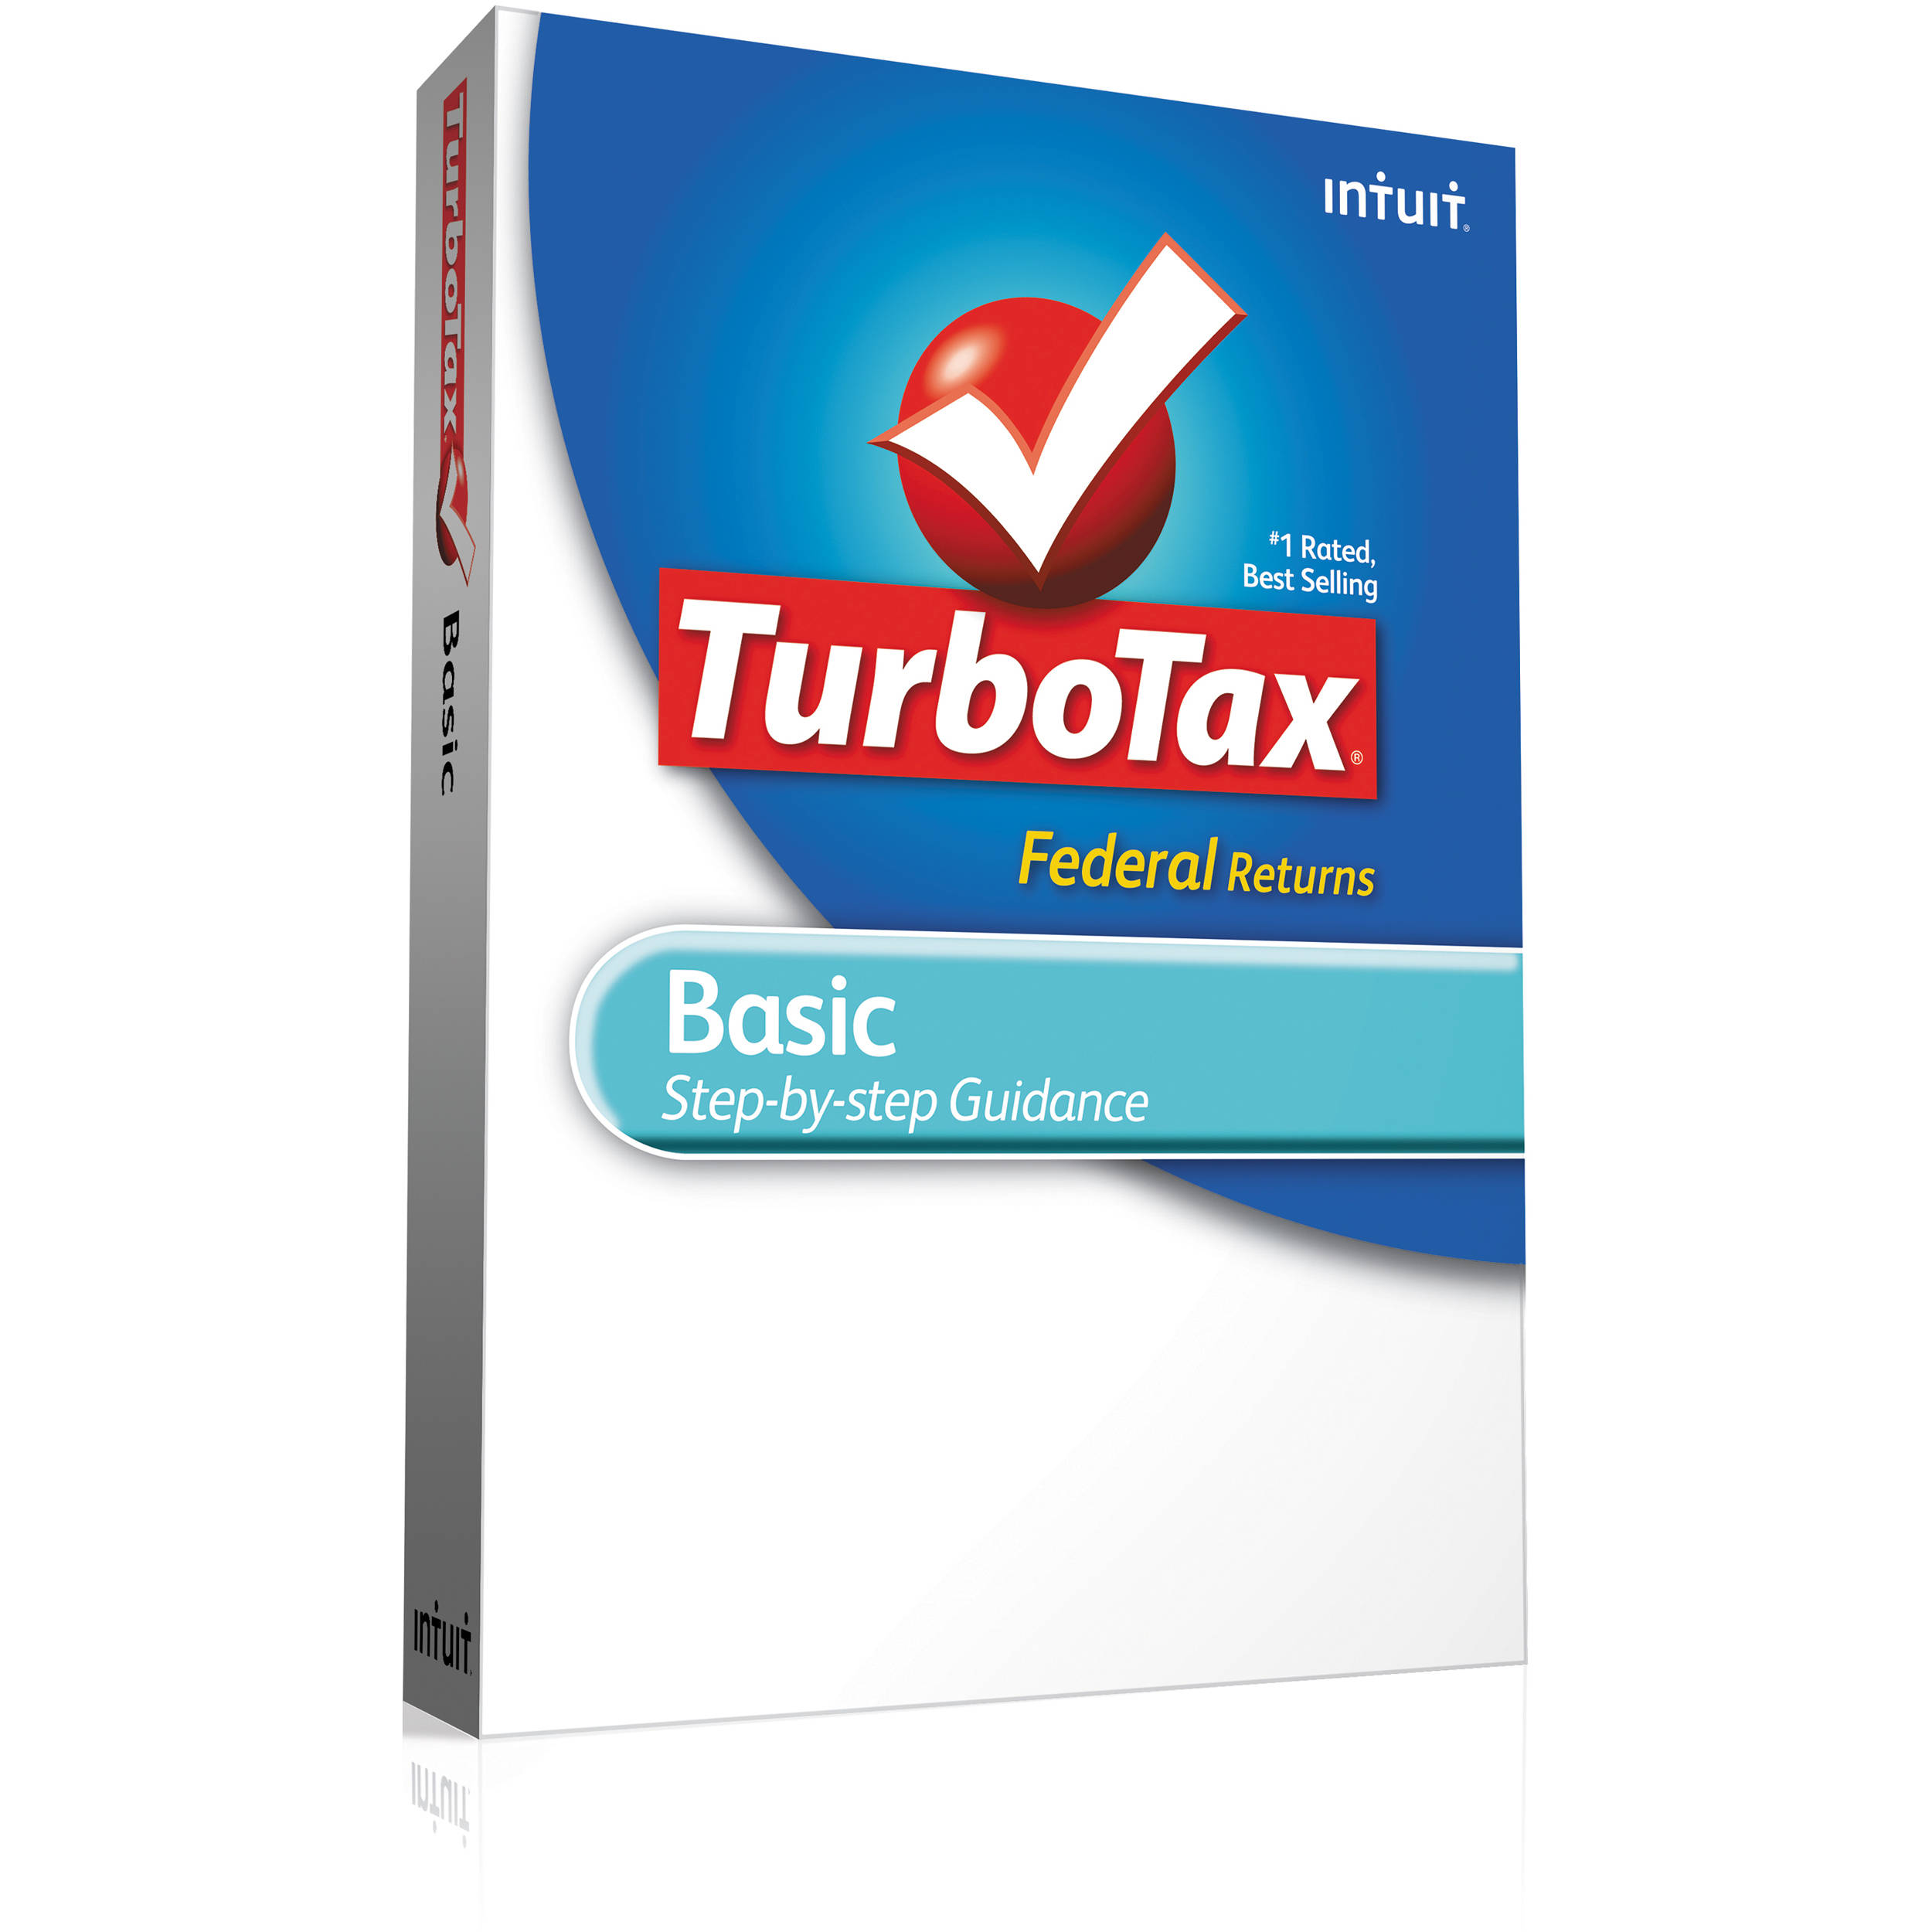 There is no online TurboTax Basic this year (). If you would like to use TurboTax Basic again, consider using desktop TurboTax Basic software, which includes all the forms Basic included in .